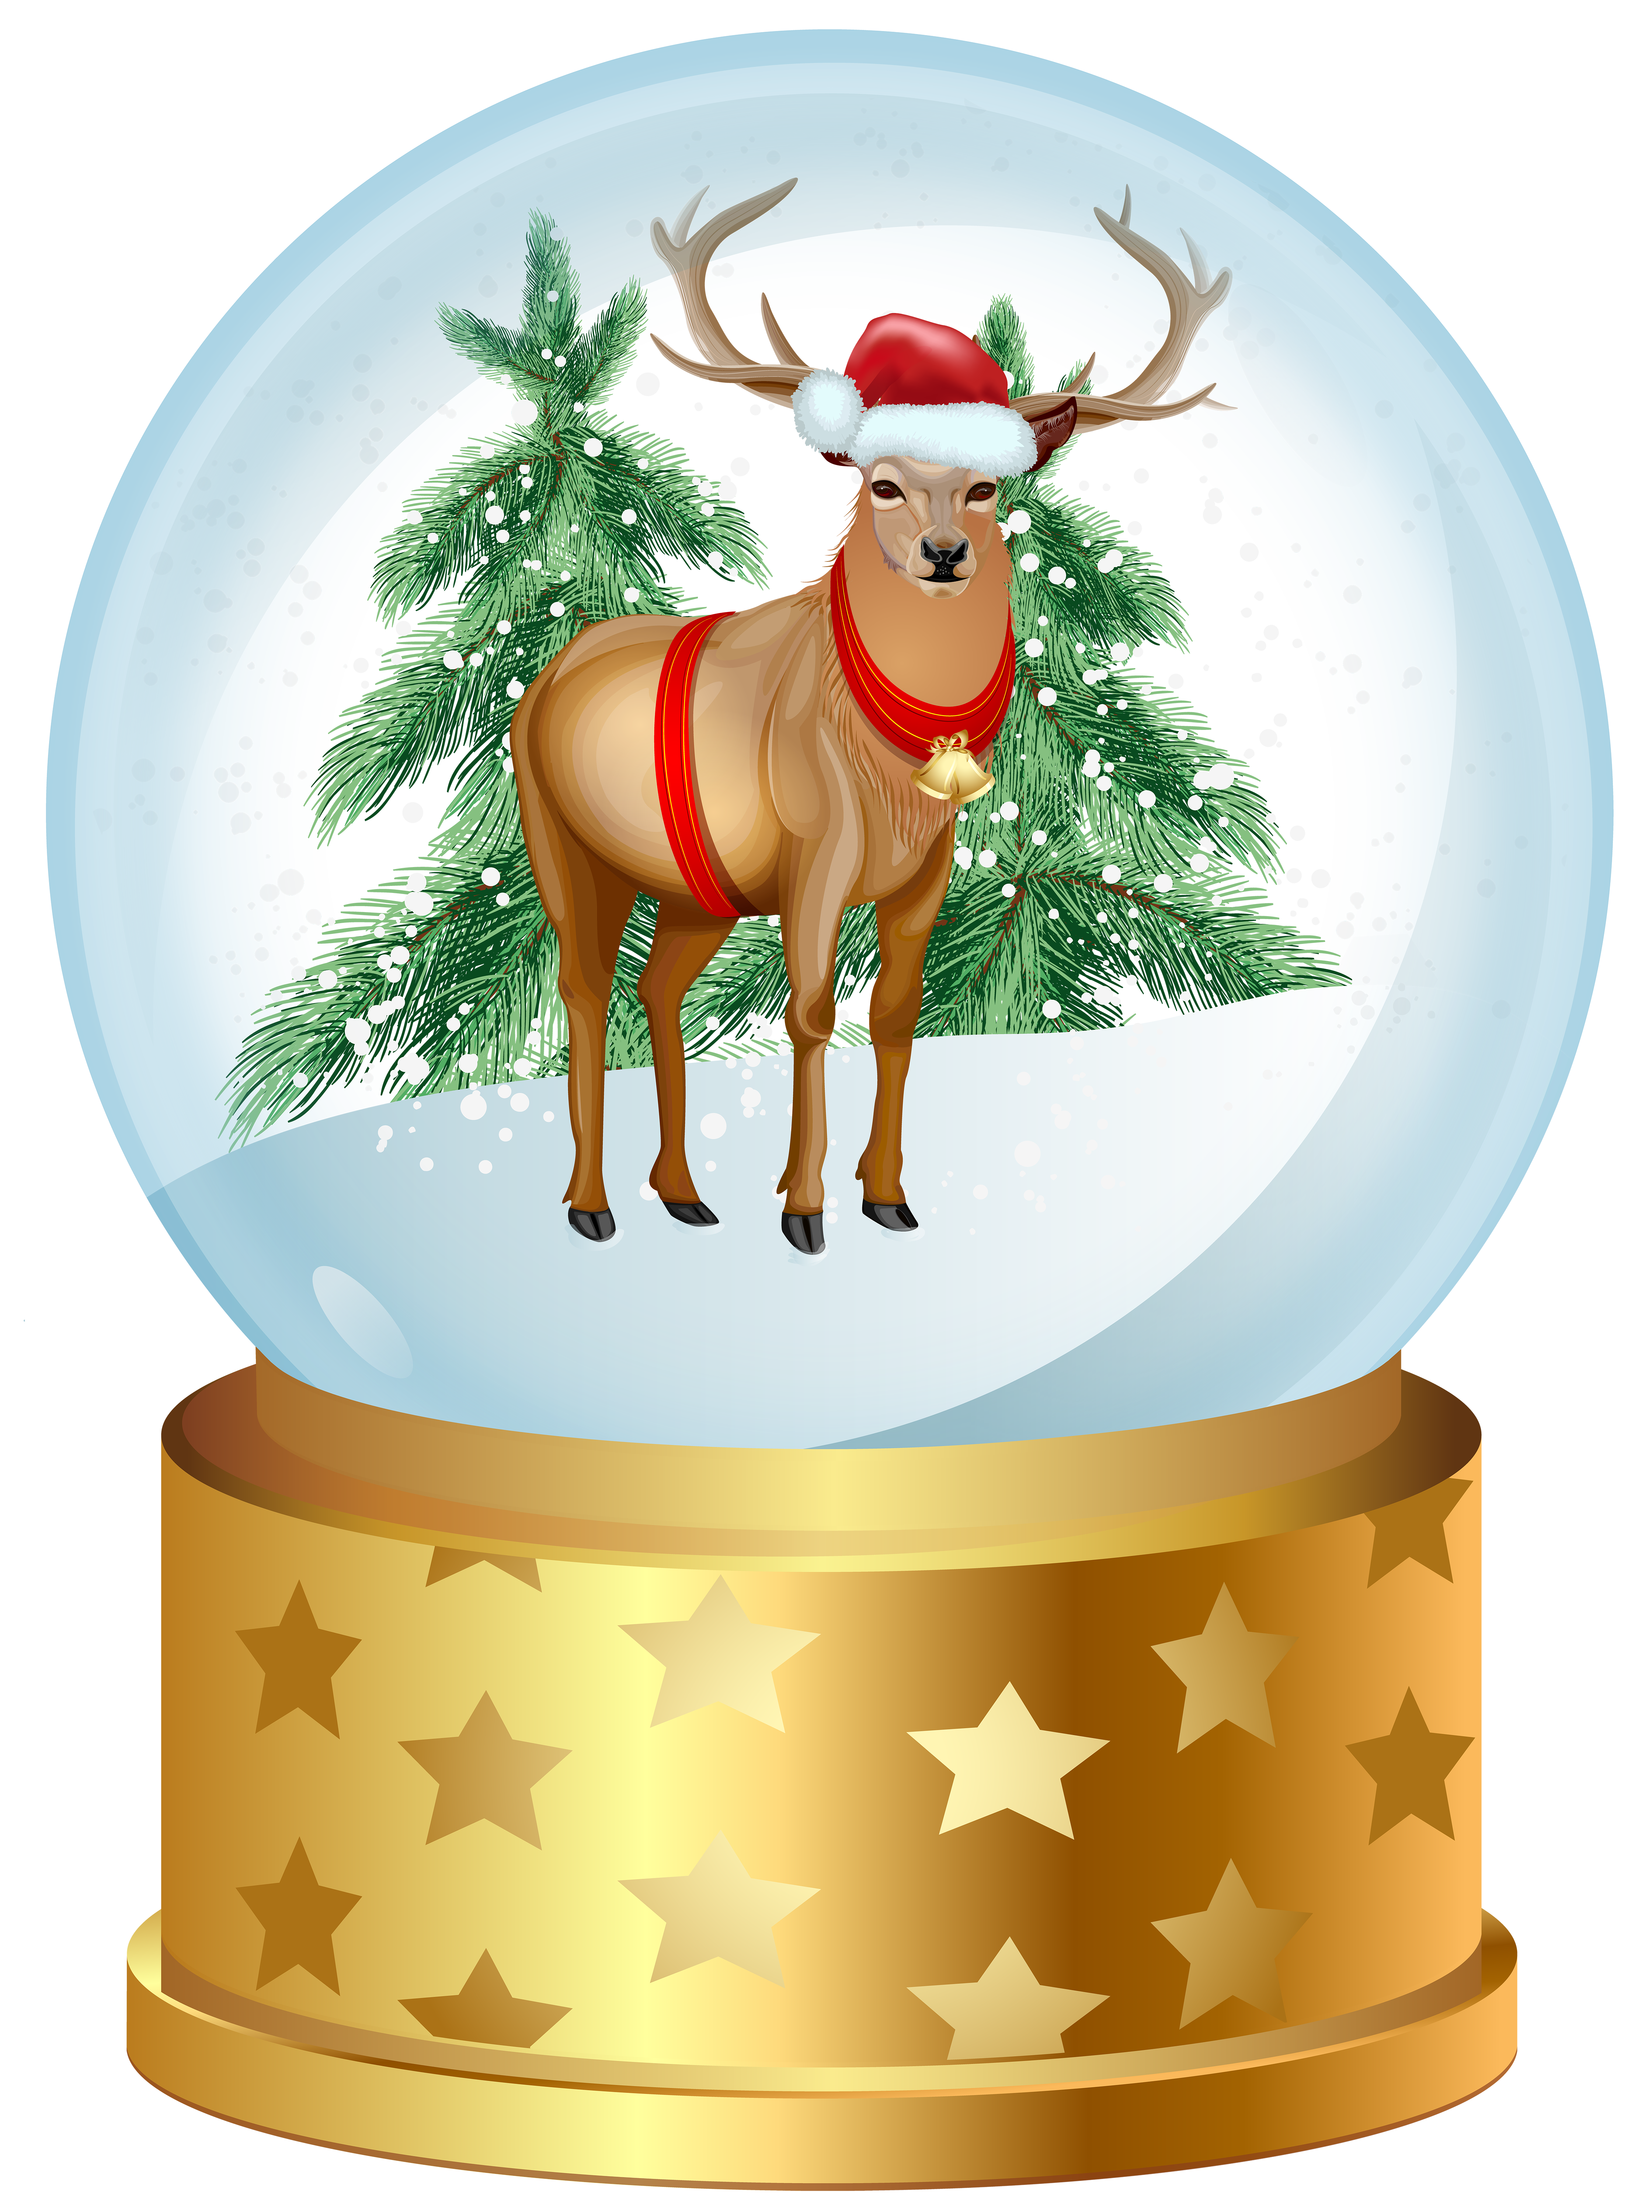 Christmas snow globe clipart picture library Christmas Deer Snow Globe PNG Clip Art Image | Gallery Yopriceville ... picture library